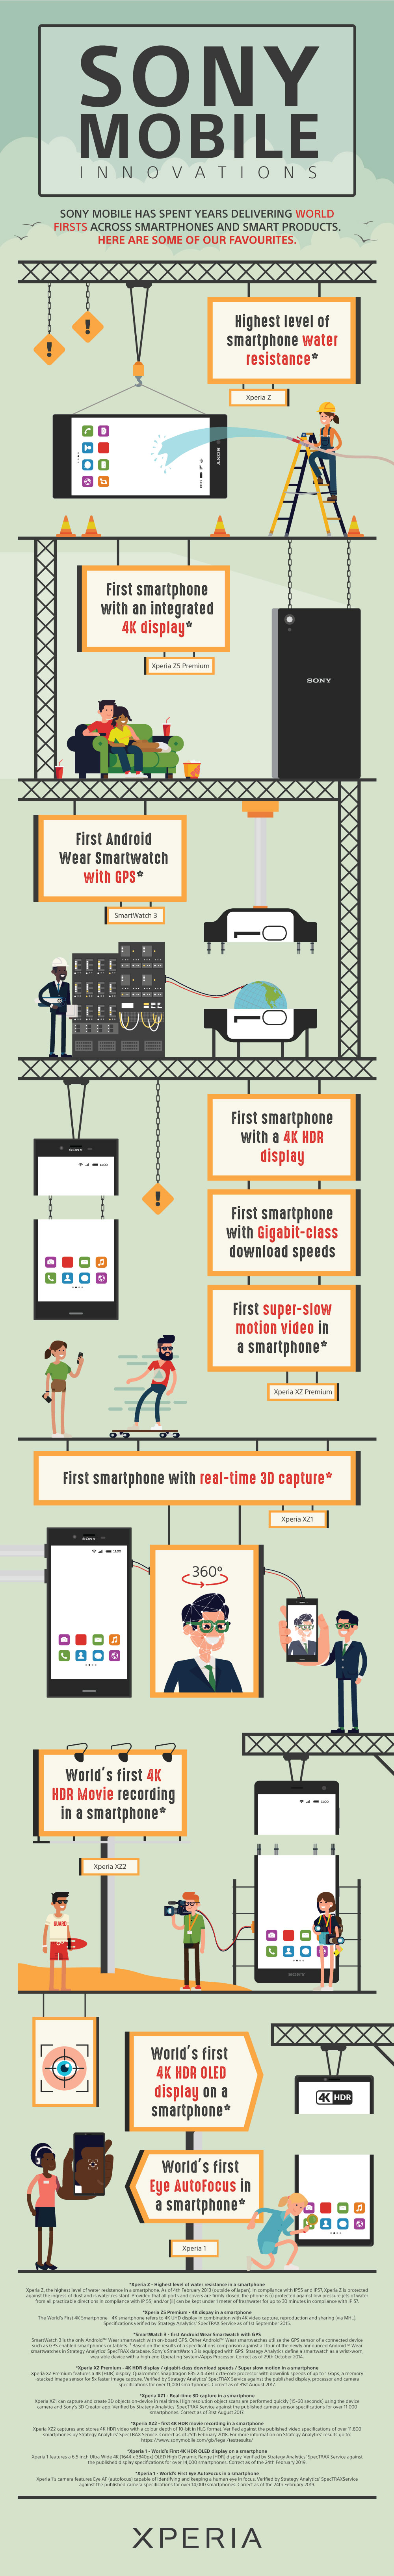 SONY-Mobile-Innovation-Infographic